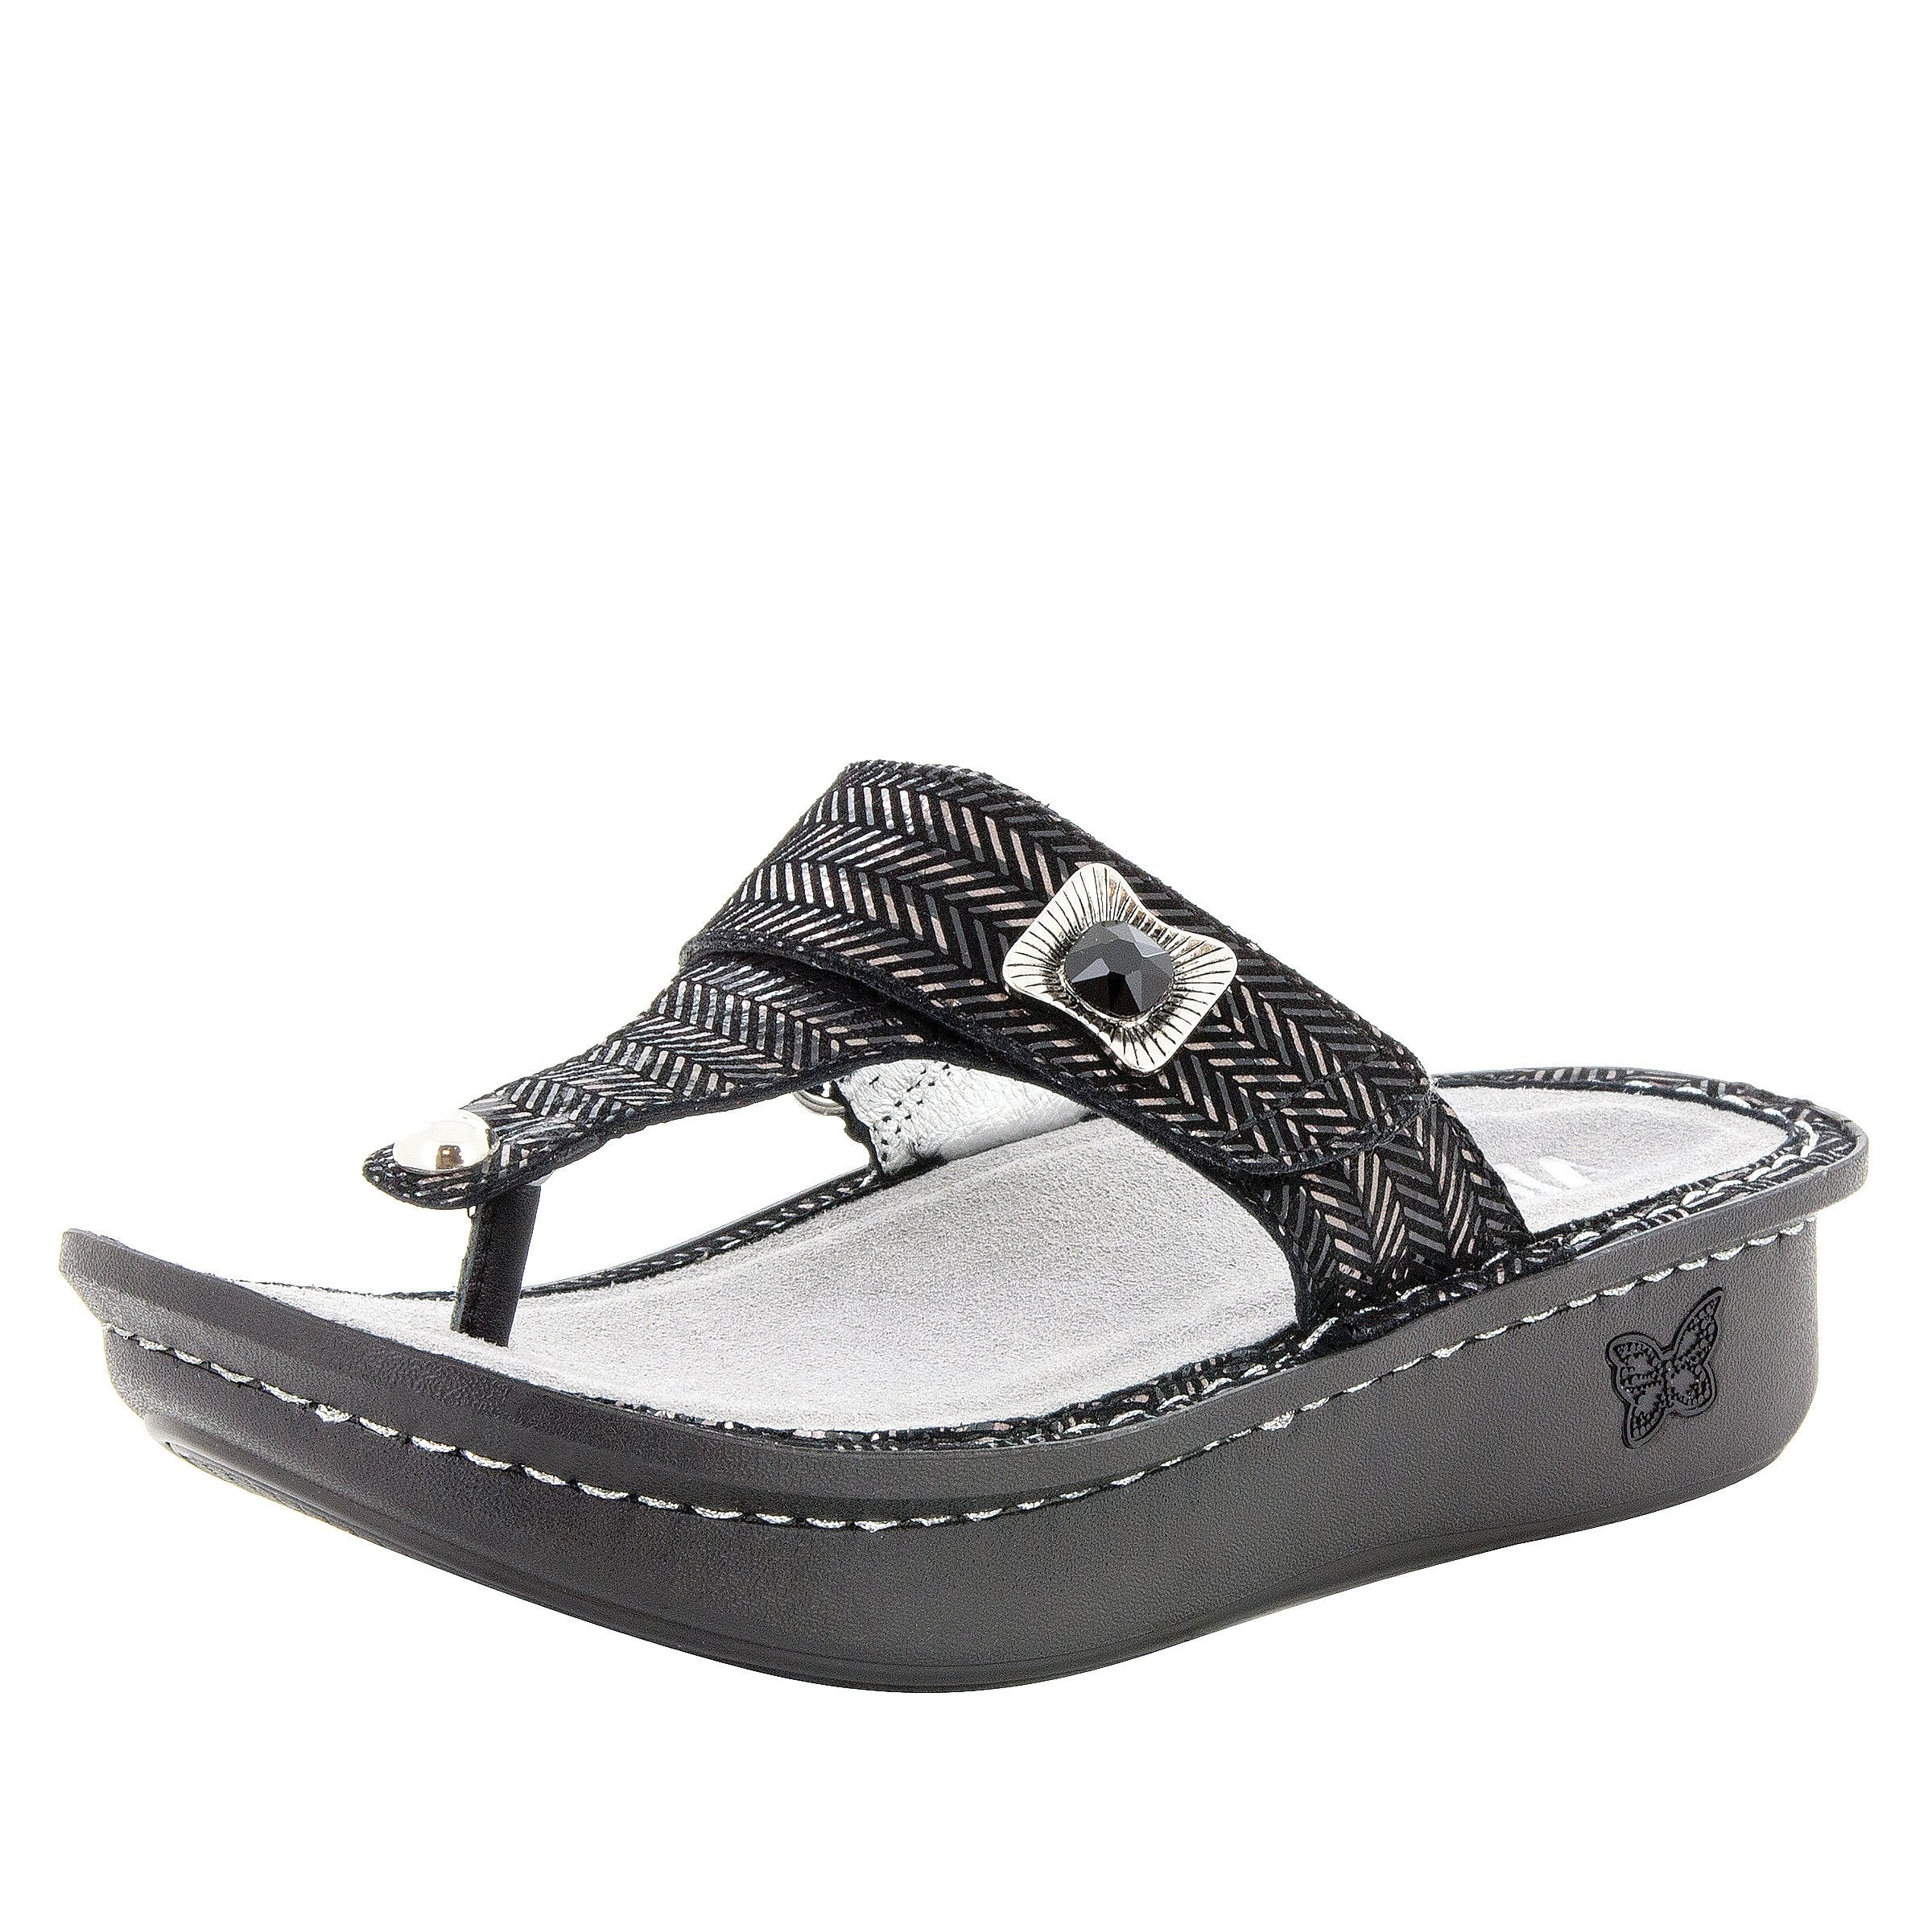 0dcdd59b29ba4 Carina Chained Black thong style sandal on the Classic rocker outsole - CAR -255 S1